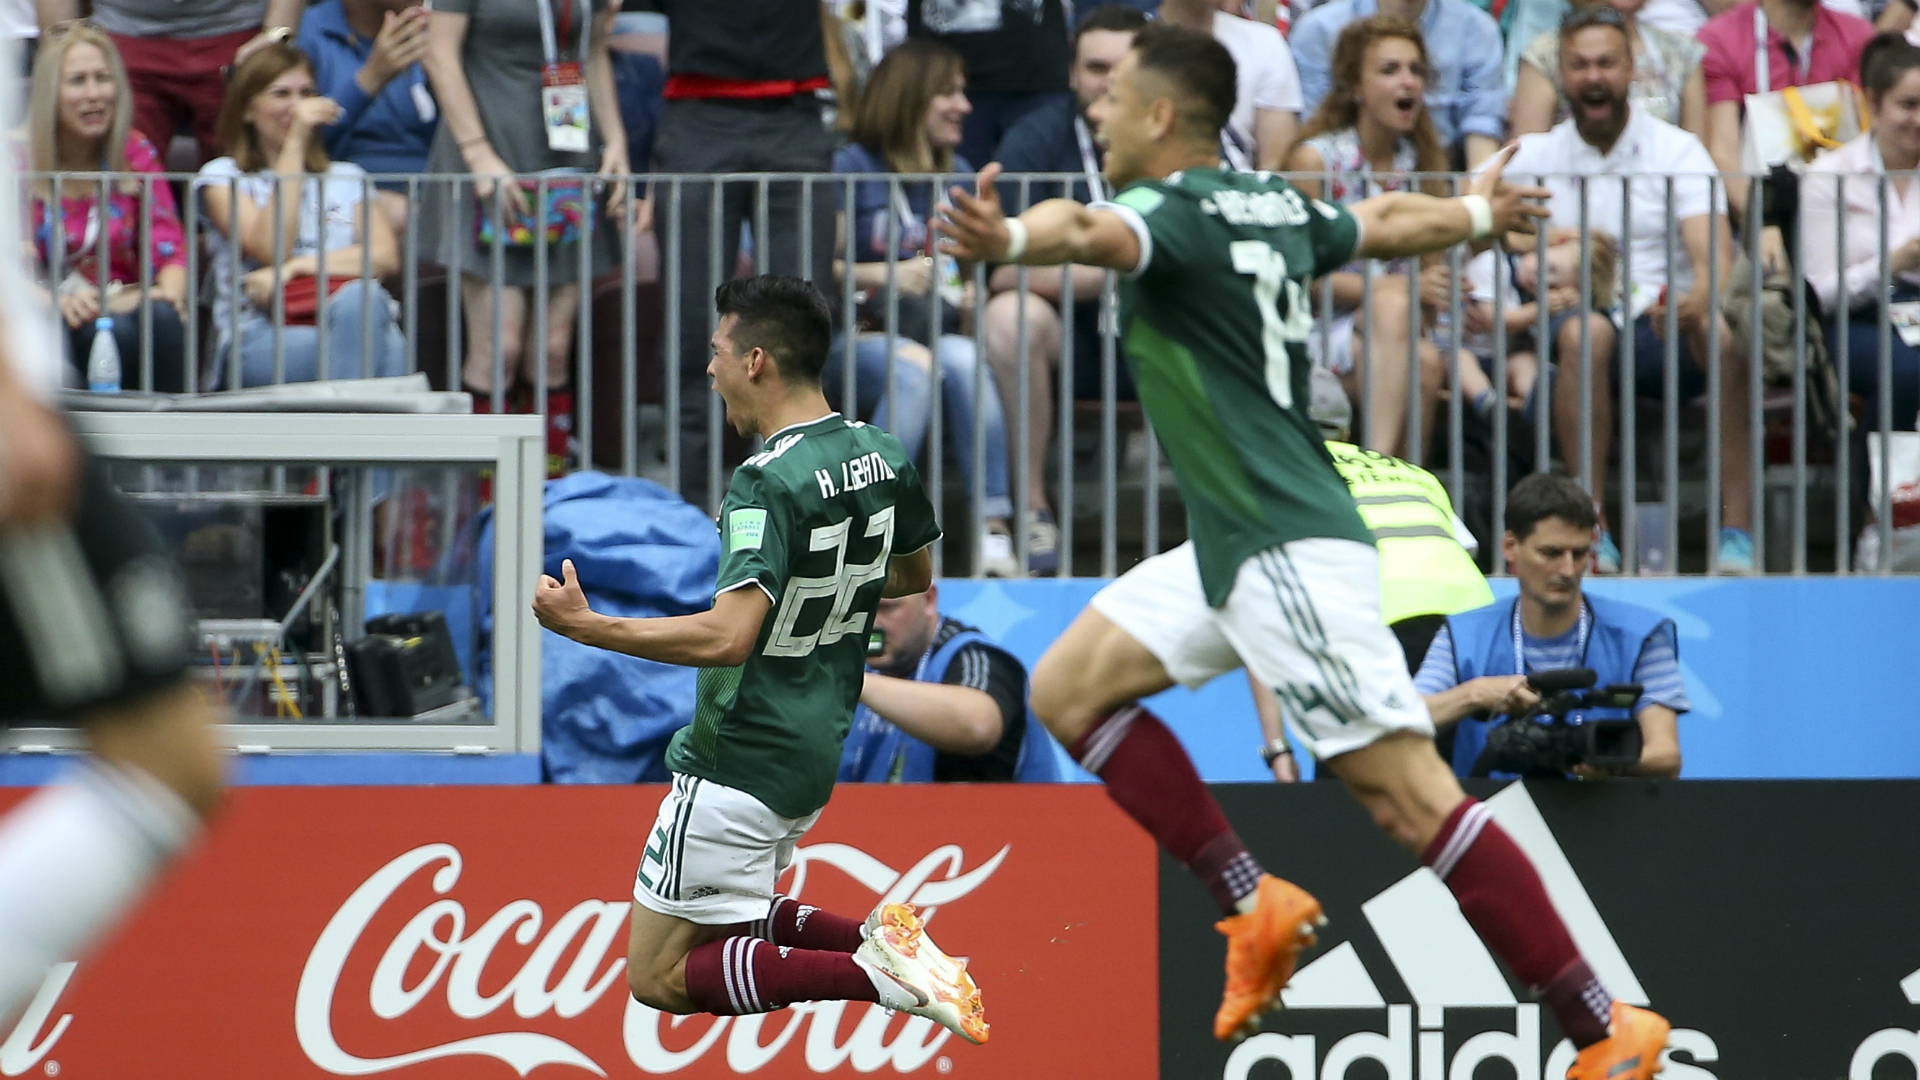 World Cup 2018: Germany struggles with generation gap in loss to Mexico